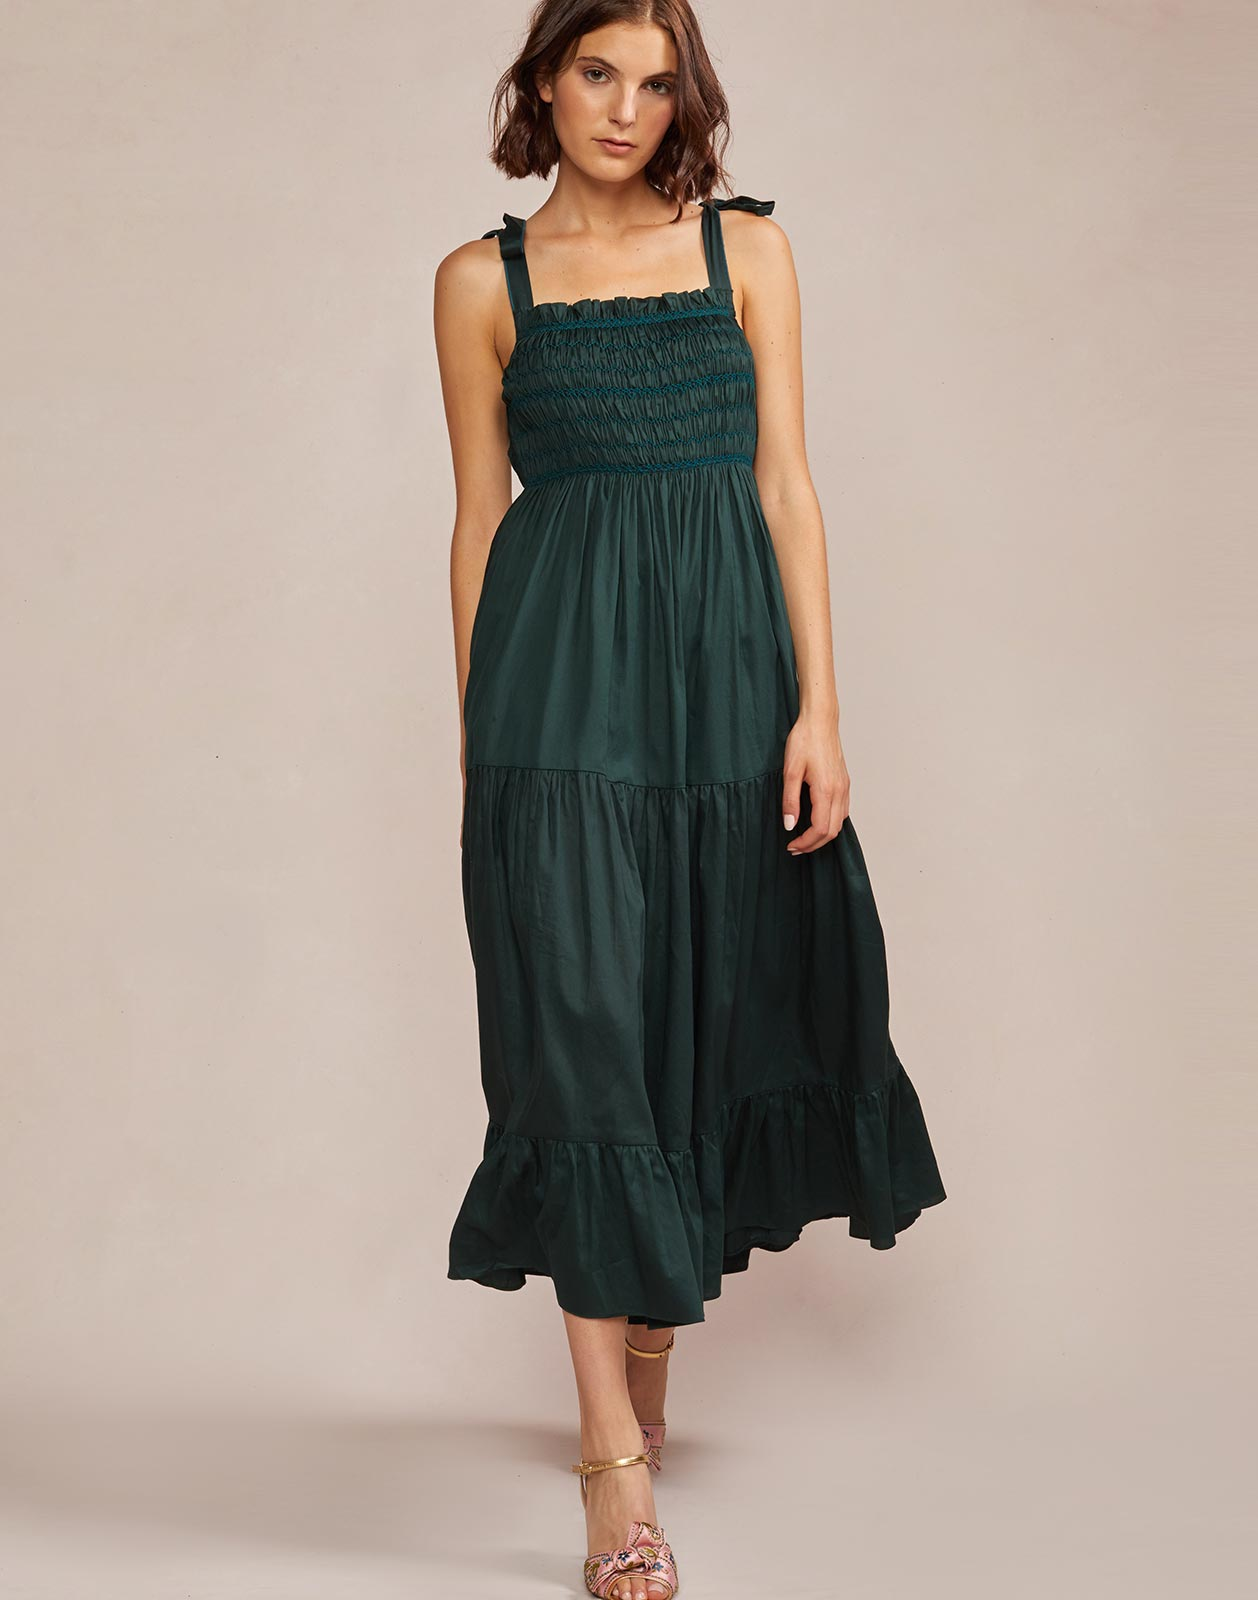 Full view of Hailey polished cotton maxi dress